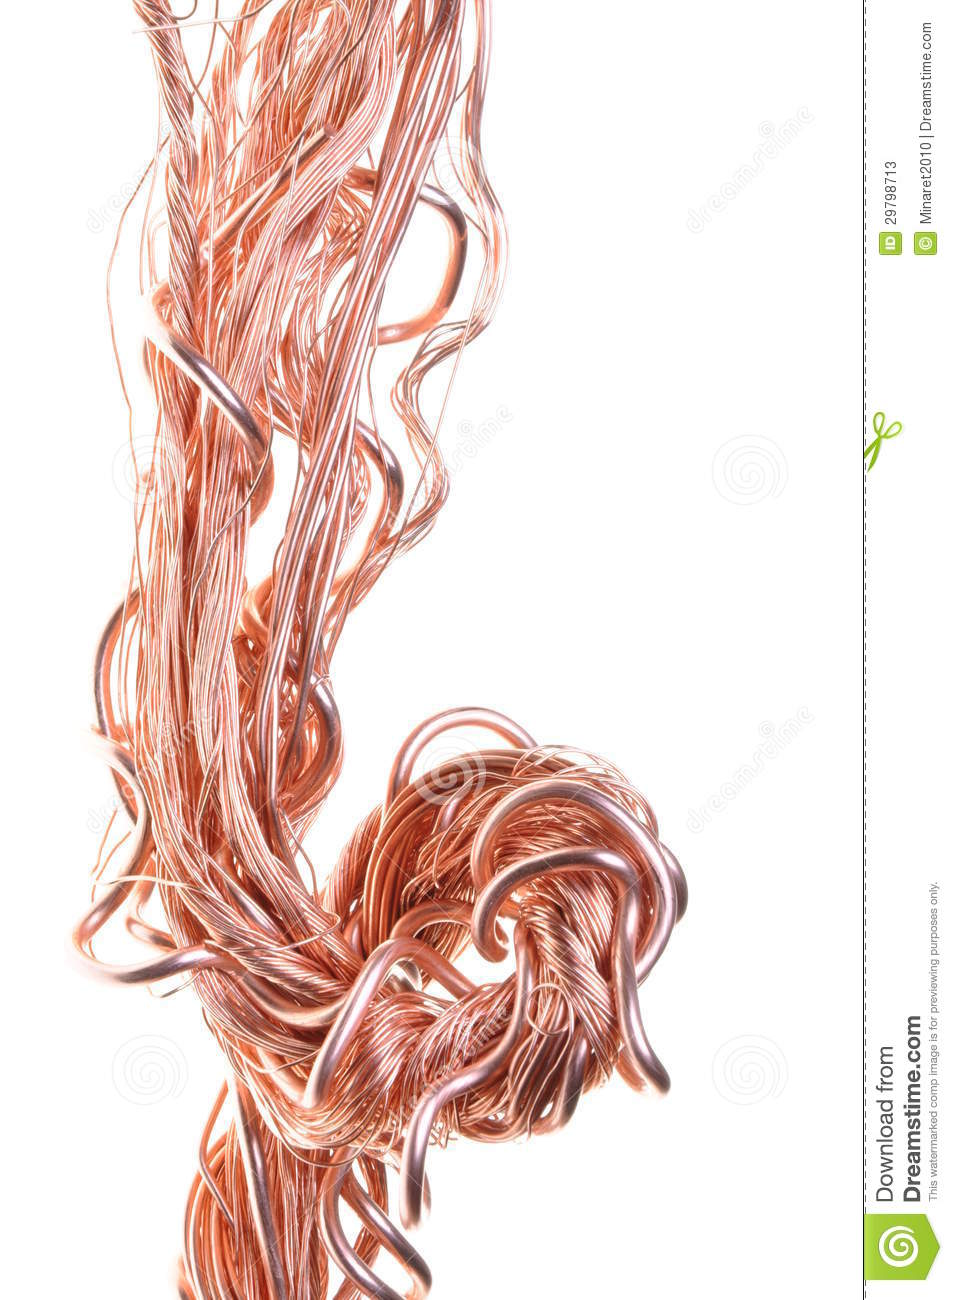 copper wires stock photos - photo #43